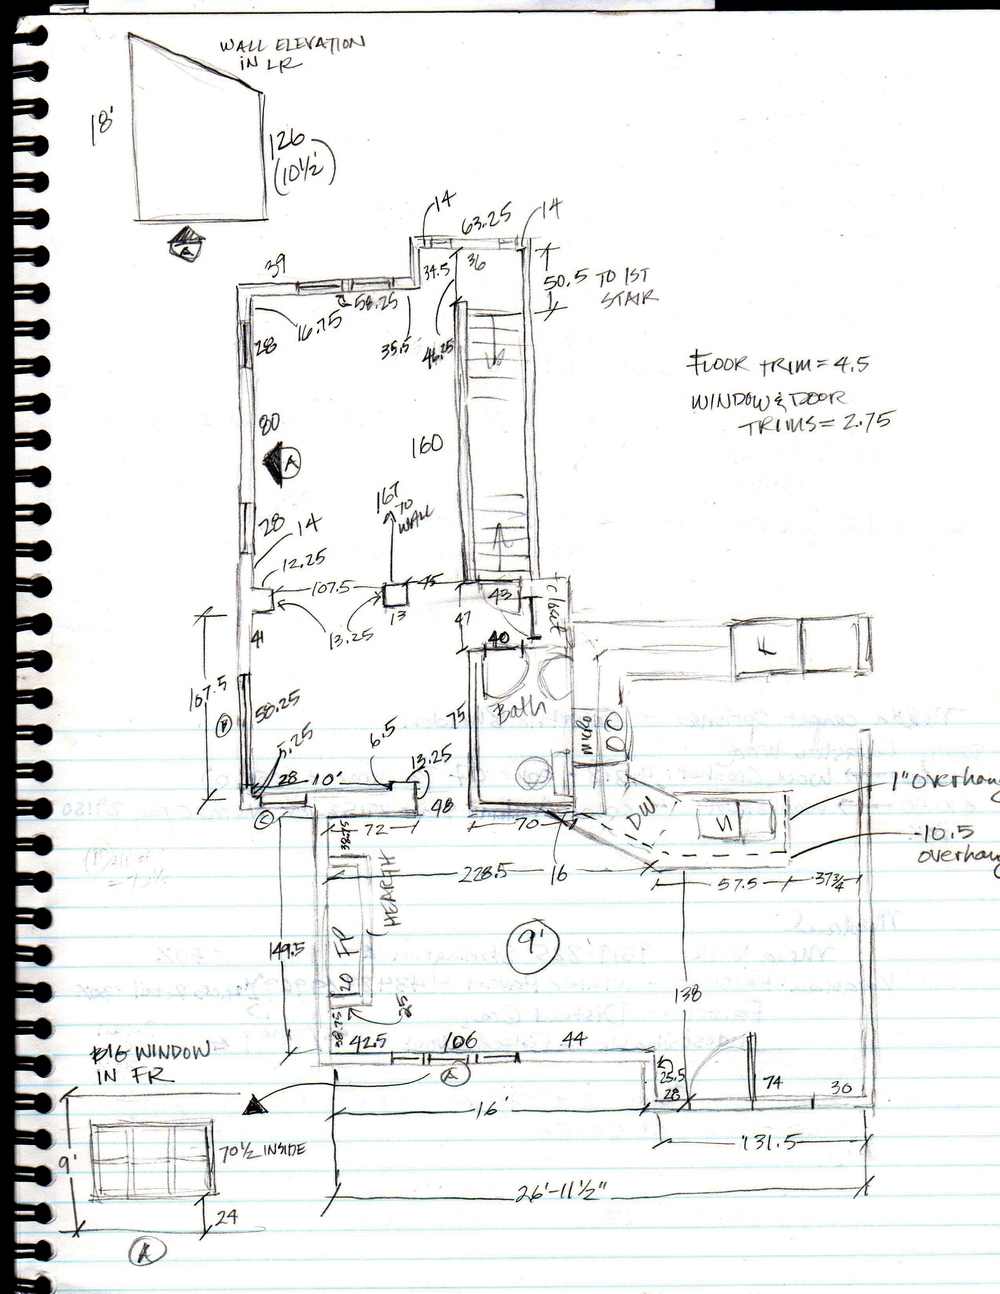 Example of a detailed sketch with measurements.